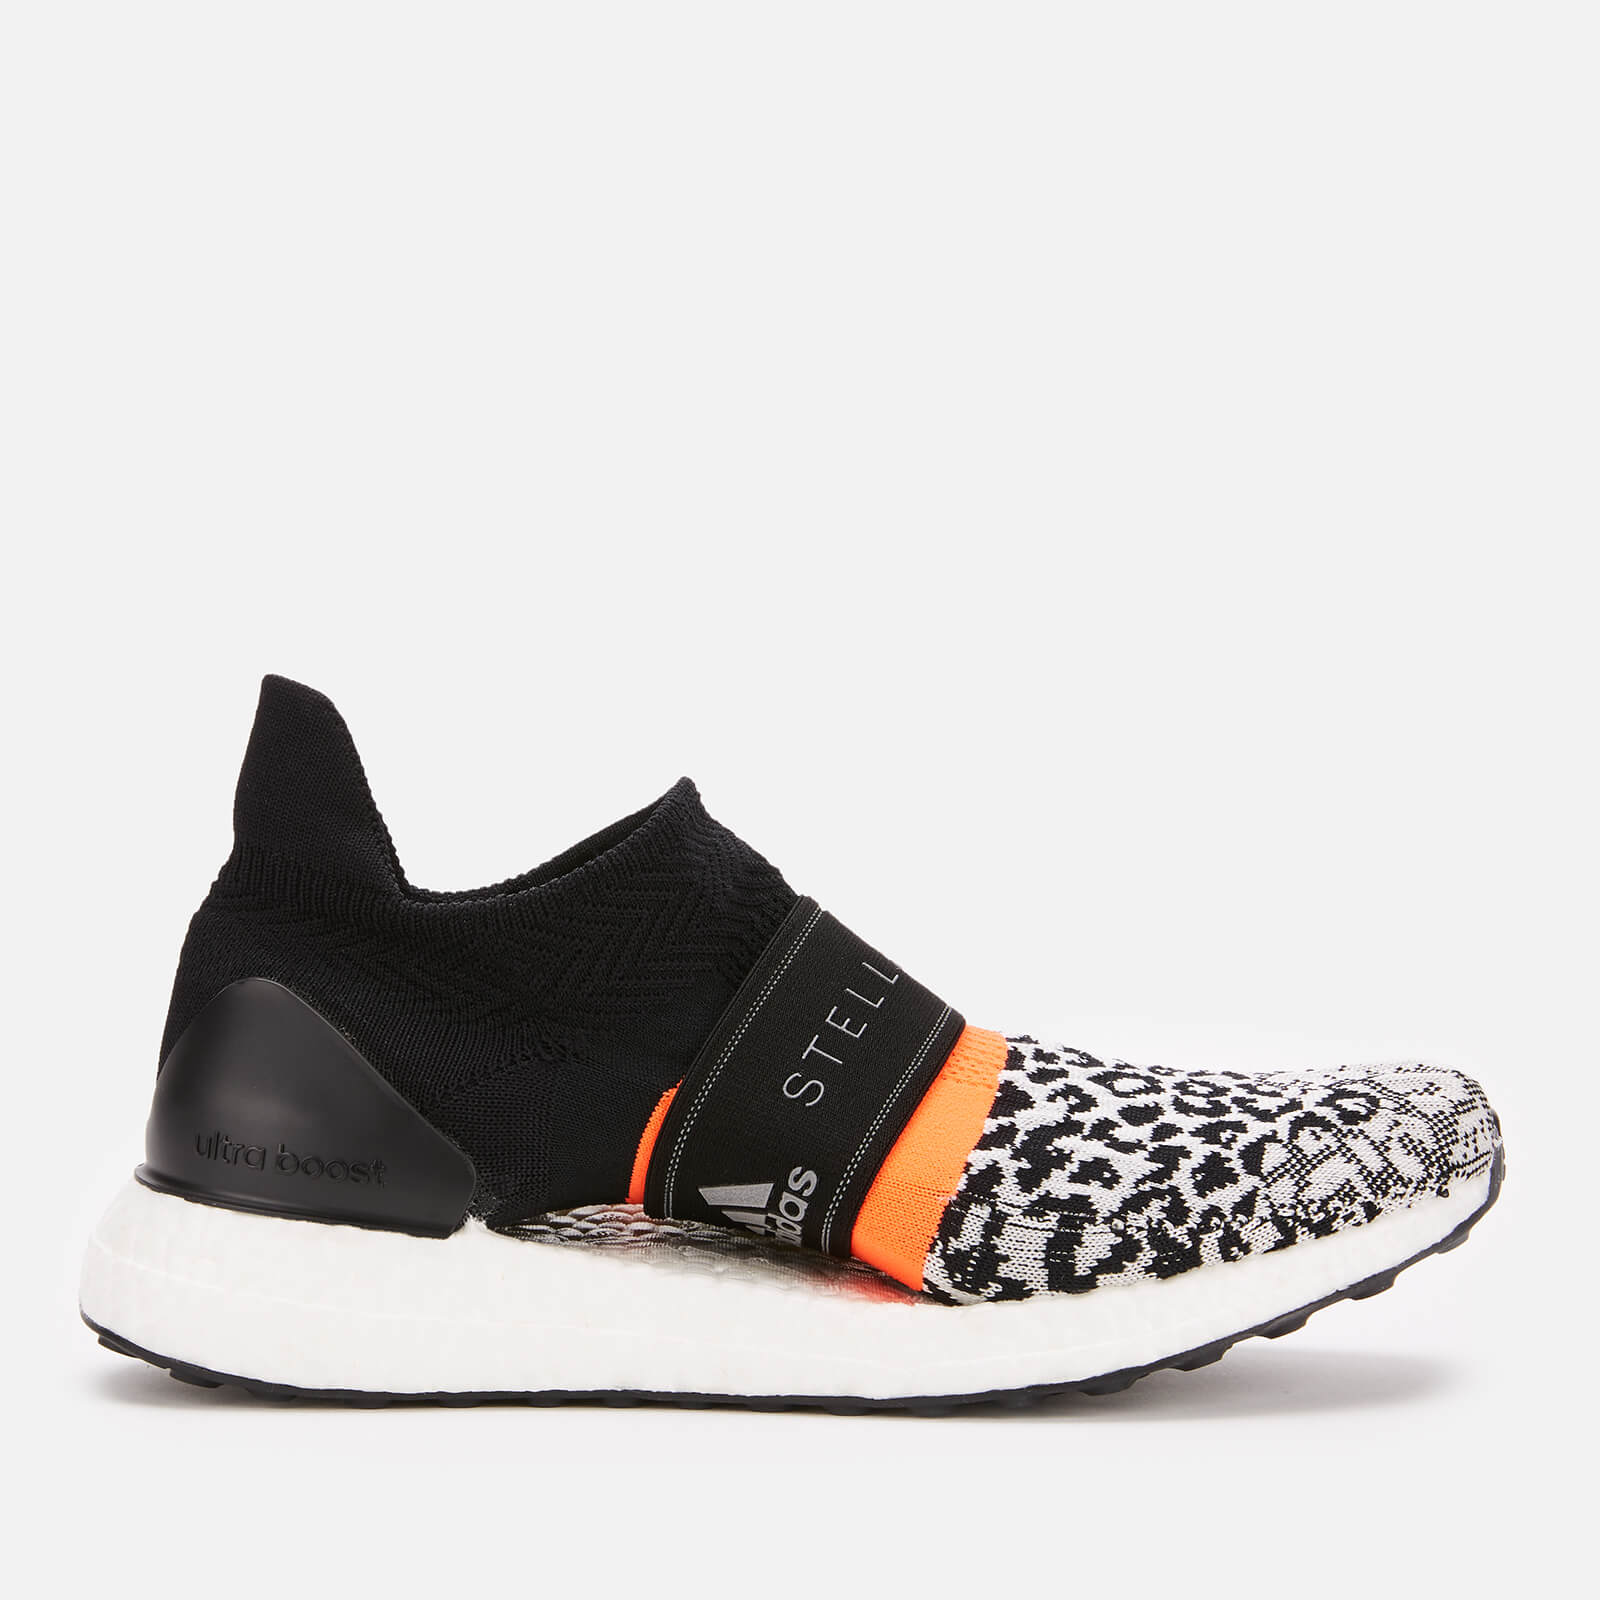 1c33c1c23 adidas by Stella McCartney Women s Ultraboost X 3D S Trainers - Core  Black C White Sol Red - Free UK Delivery over £50